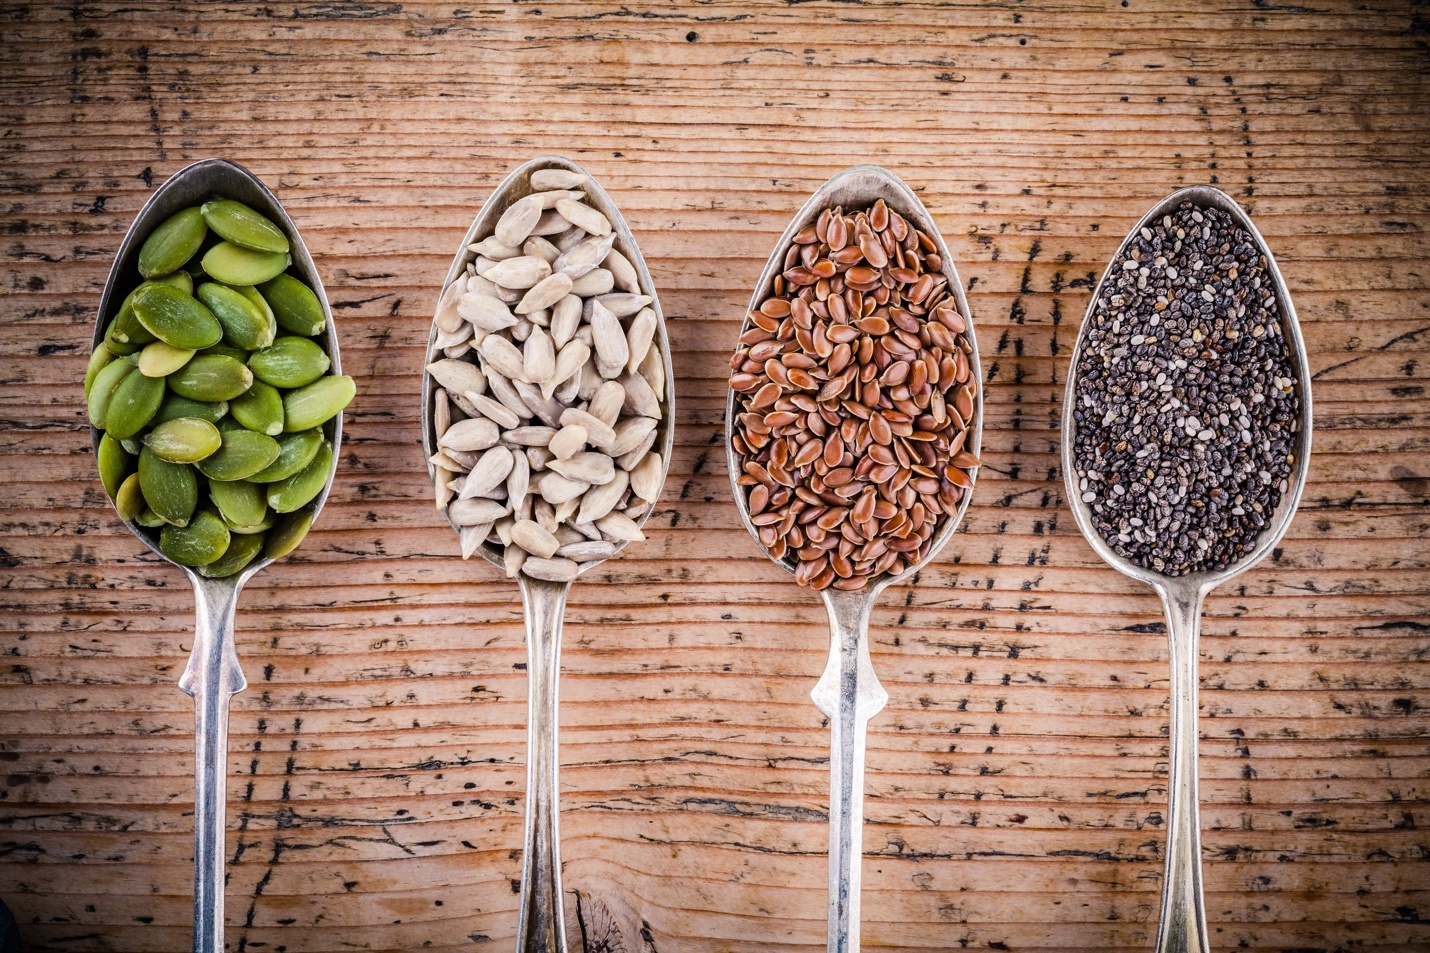 seeds - Top 20 Natural Foods To Help You Manage Your Diabetes Effectively